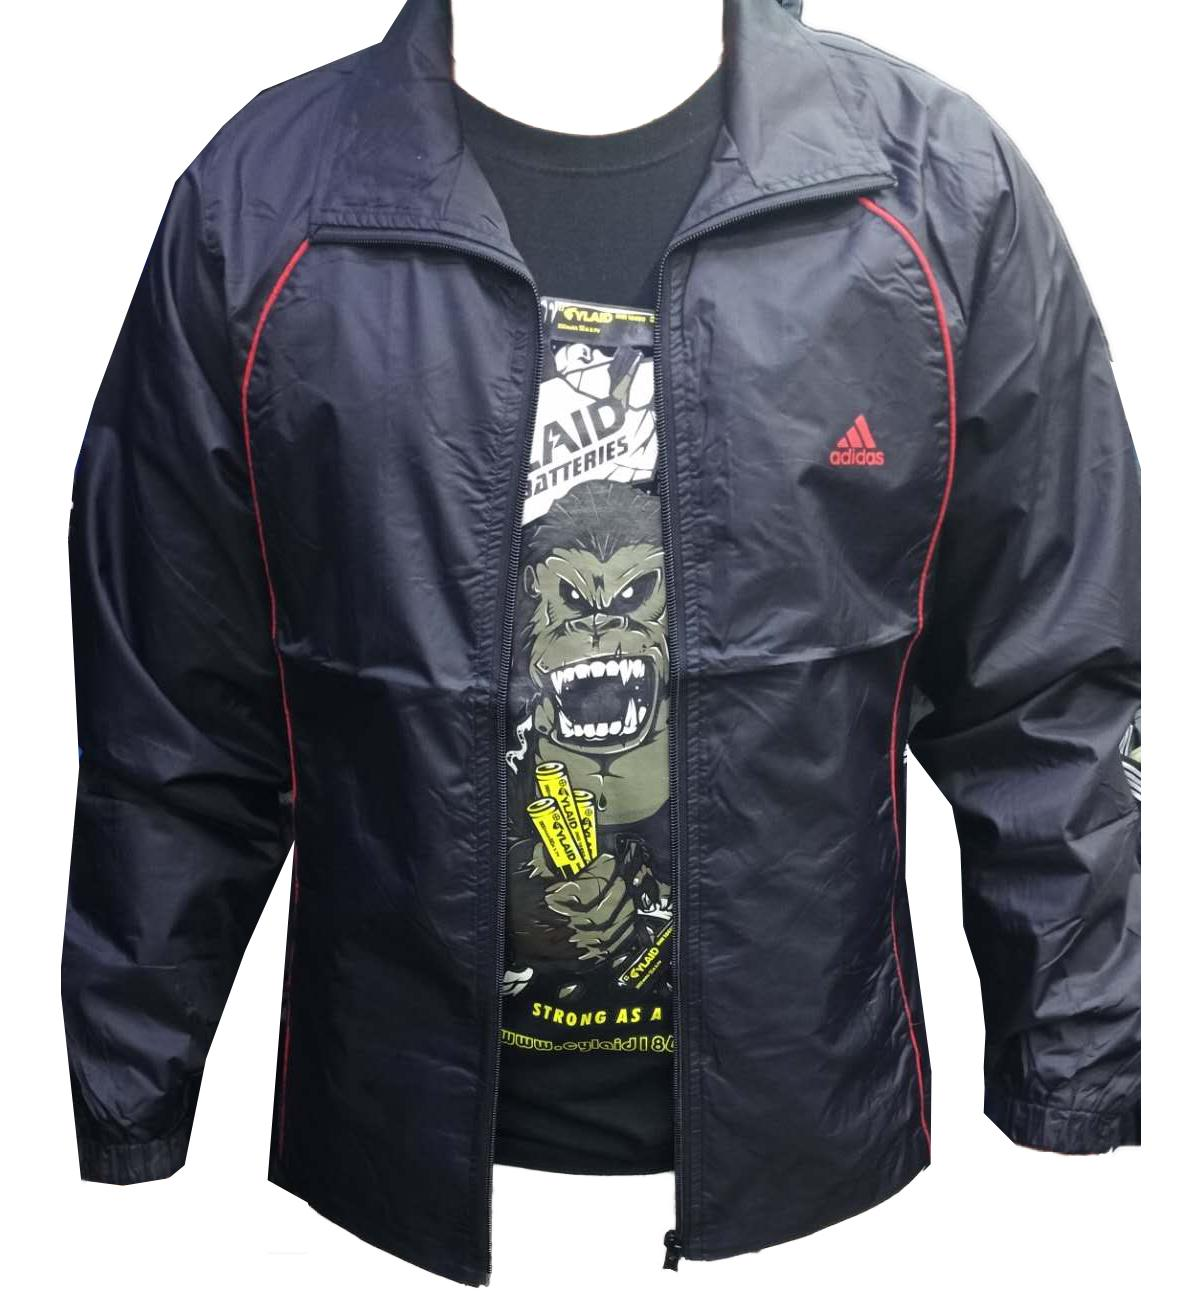 Jacket Didas By Champion Sport.